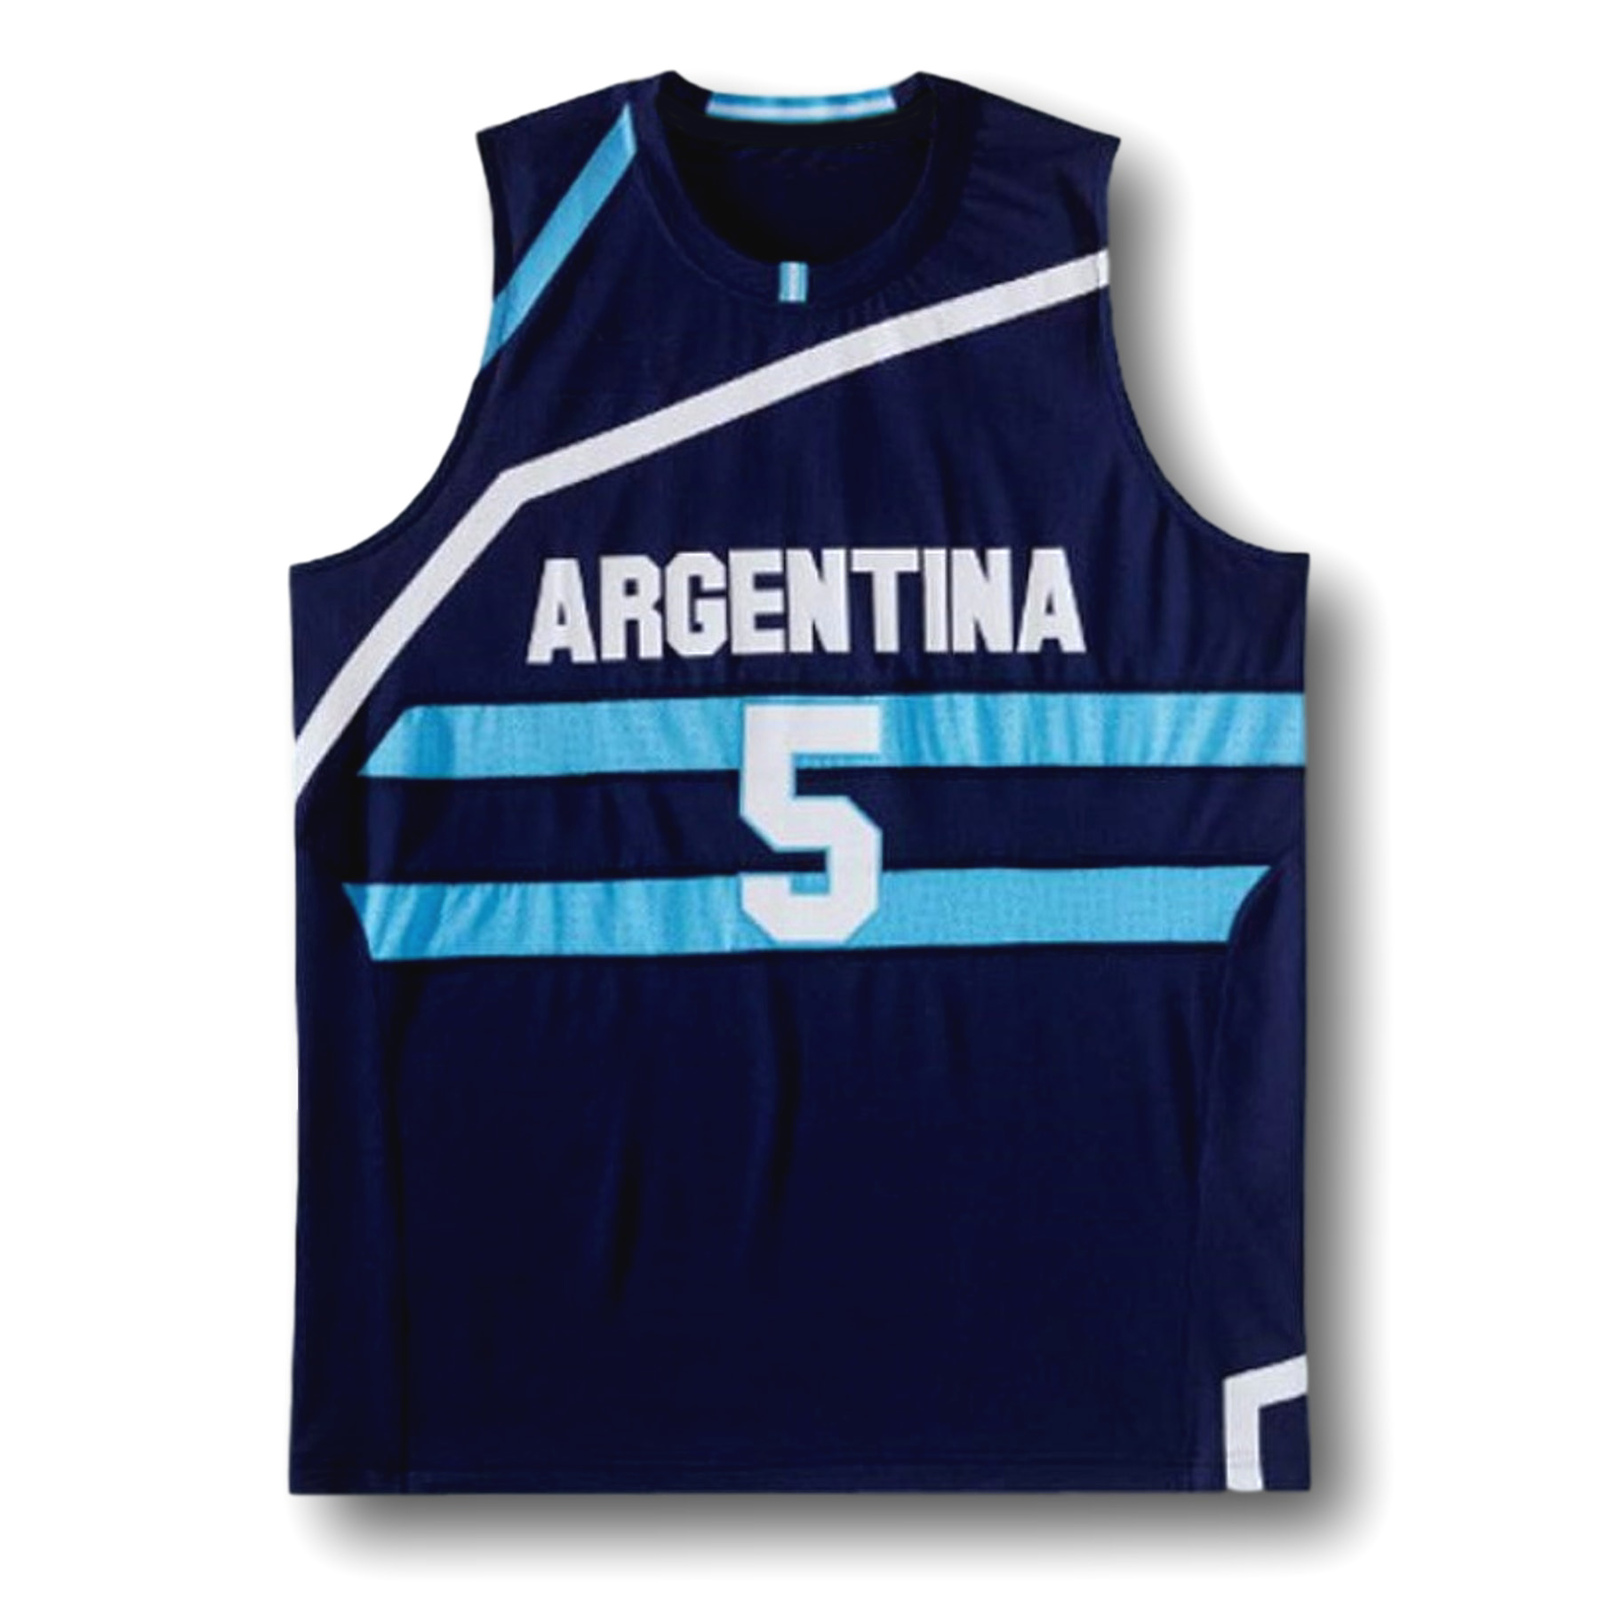 Manu Ginobili #5 Team Argentina New Men Basketball Jersey Navy Blue Any Size